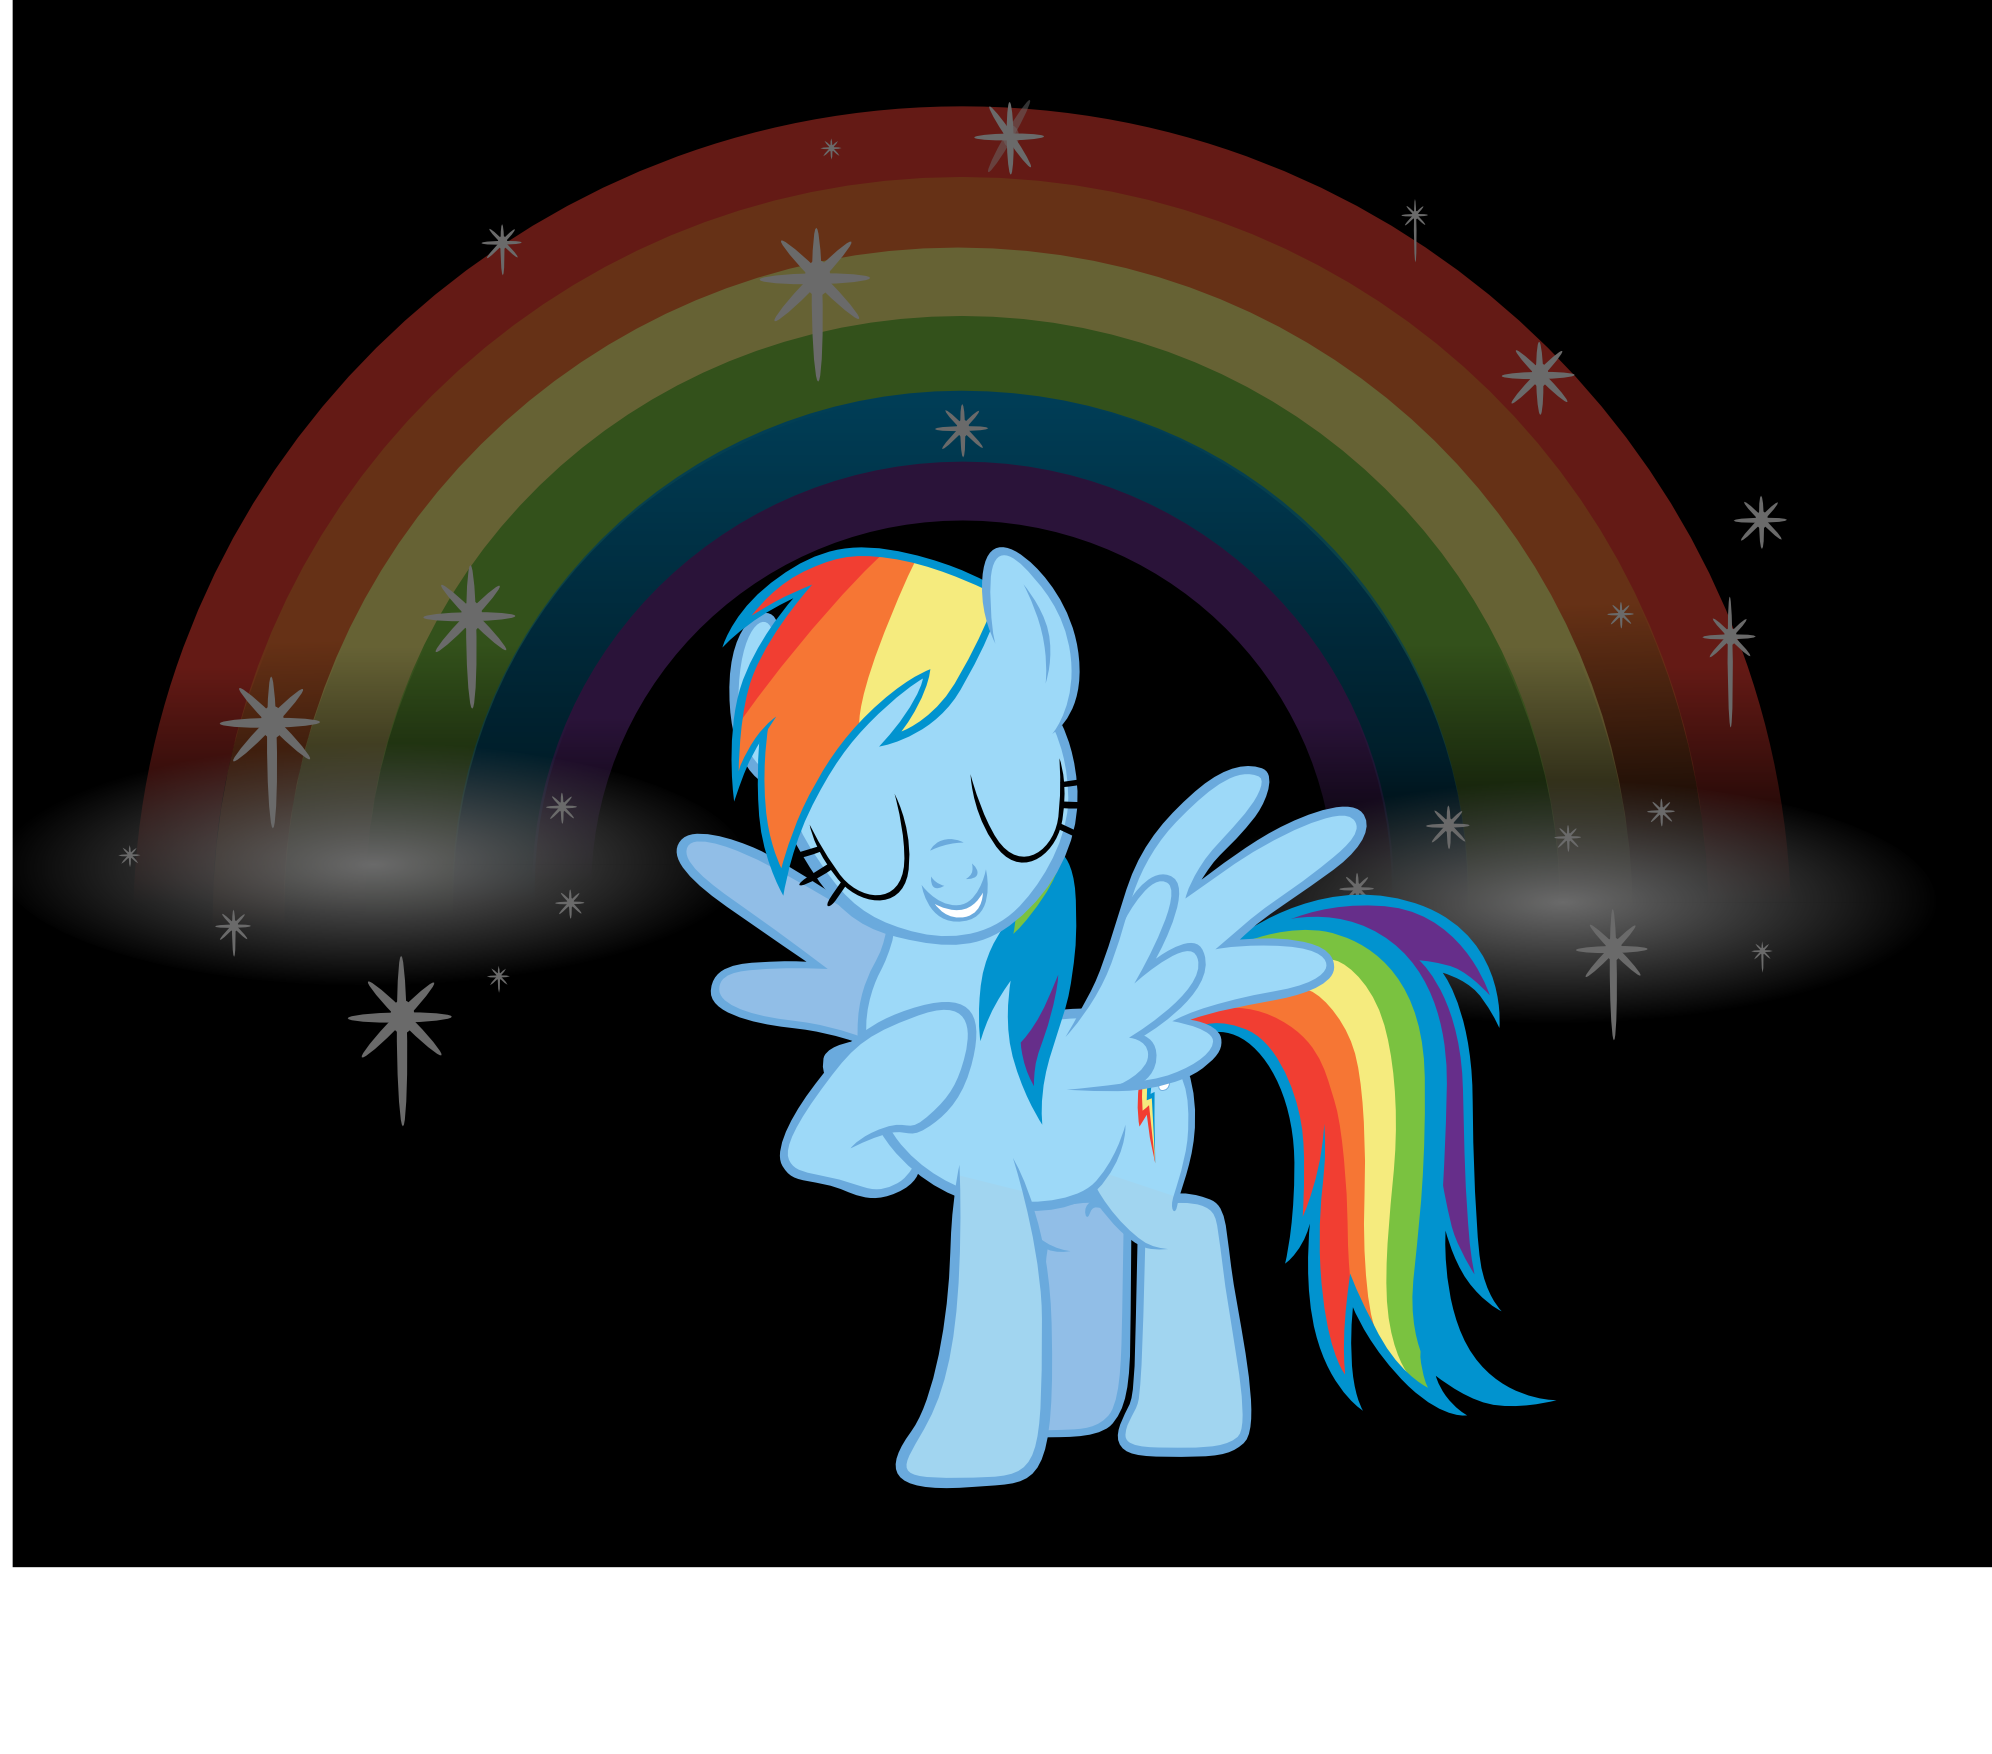 They don't call her Rainbow and Dash for nothing